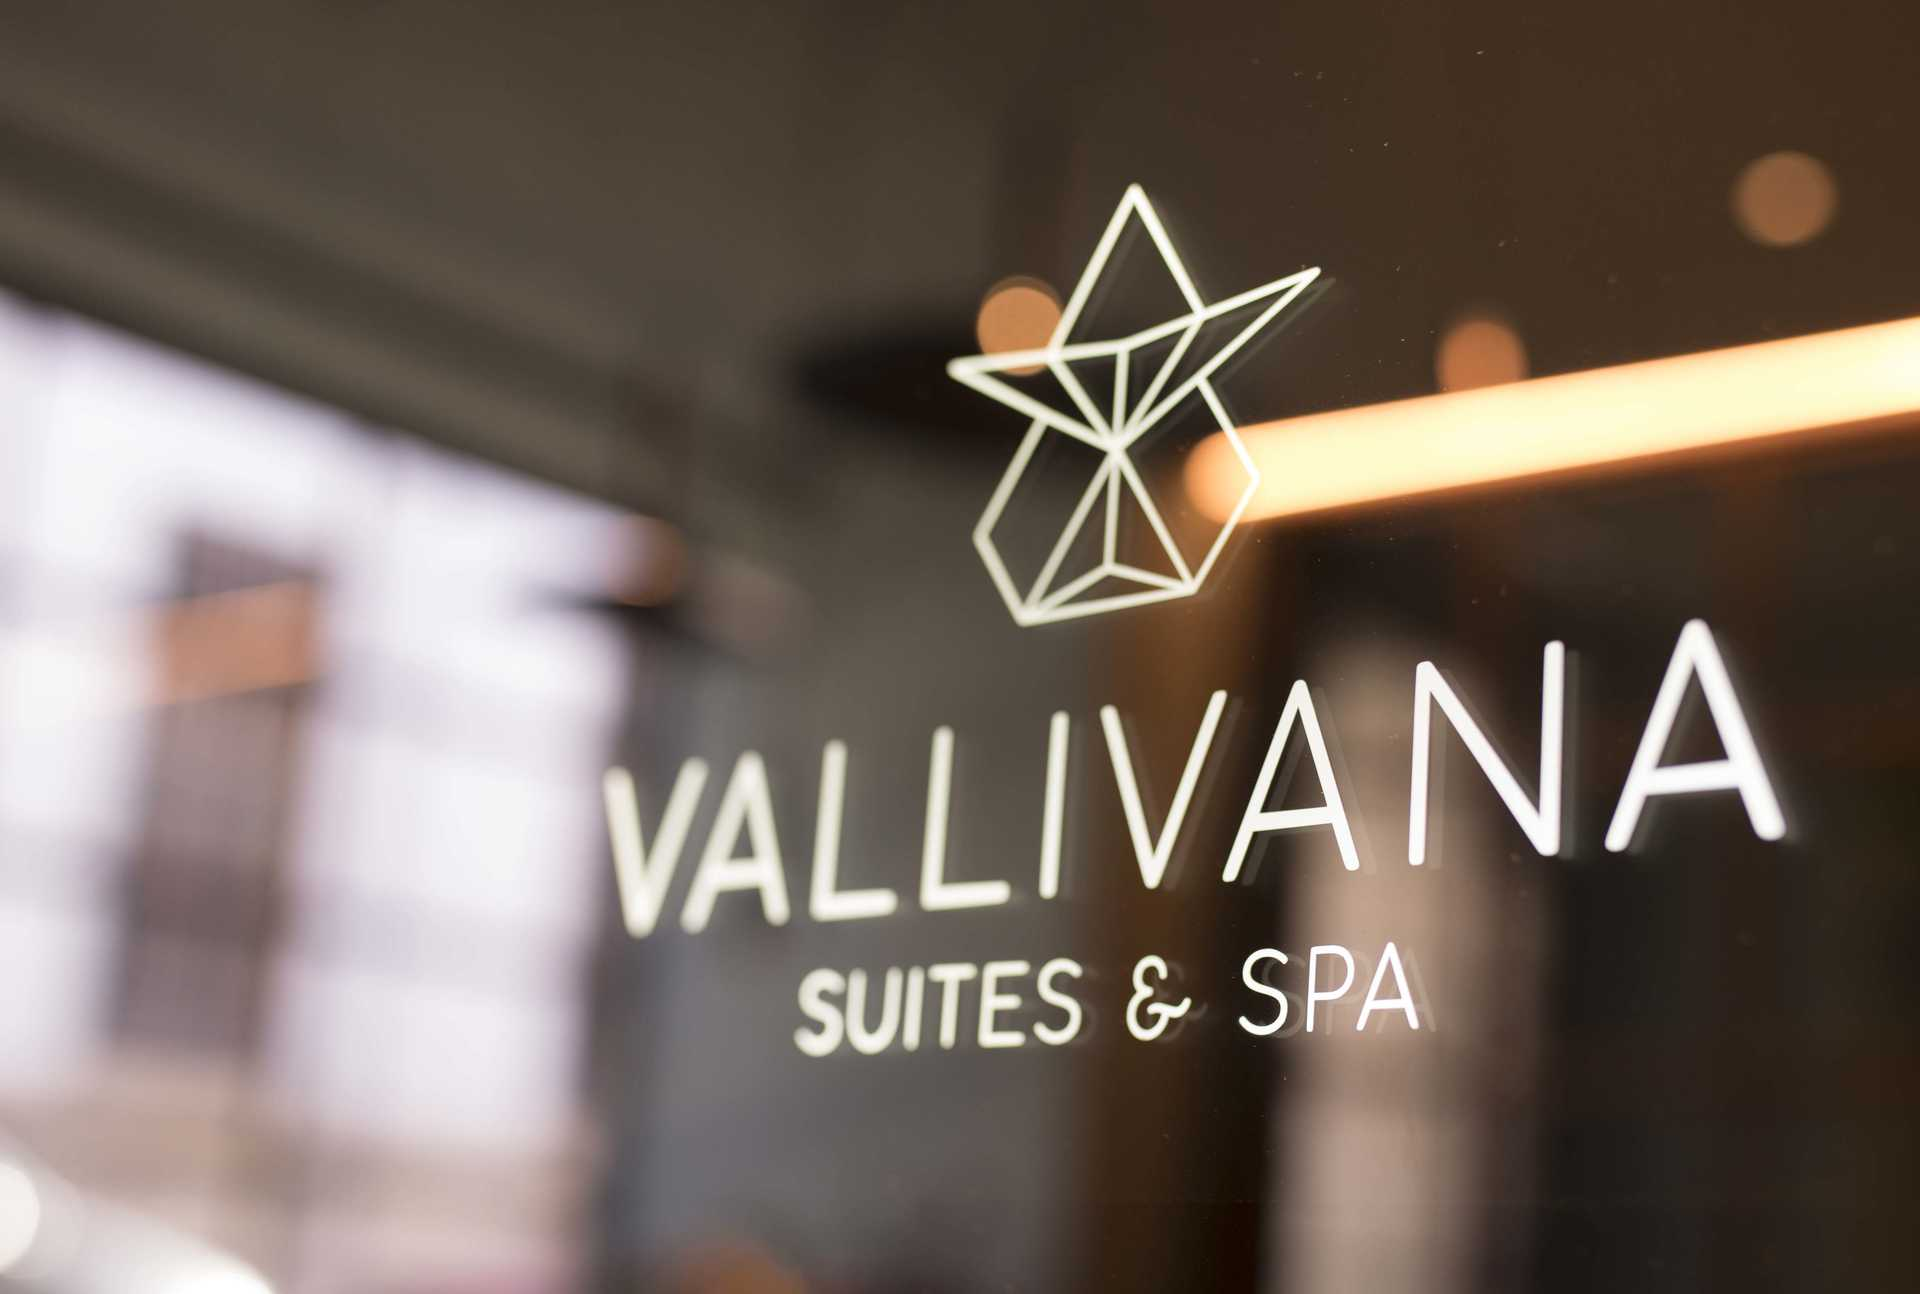 VALLIVANA SUITES & SPA